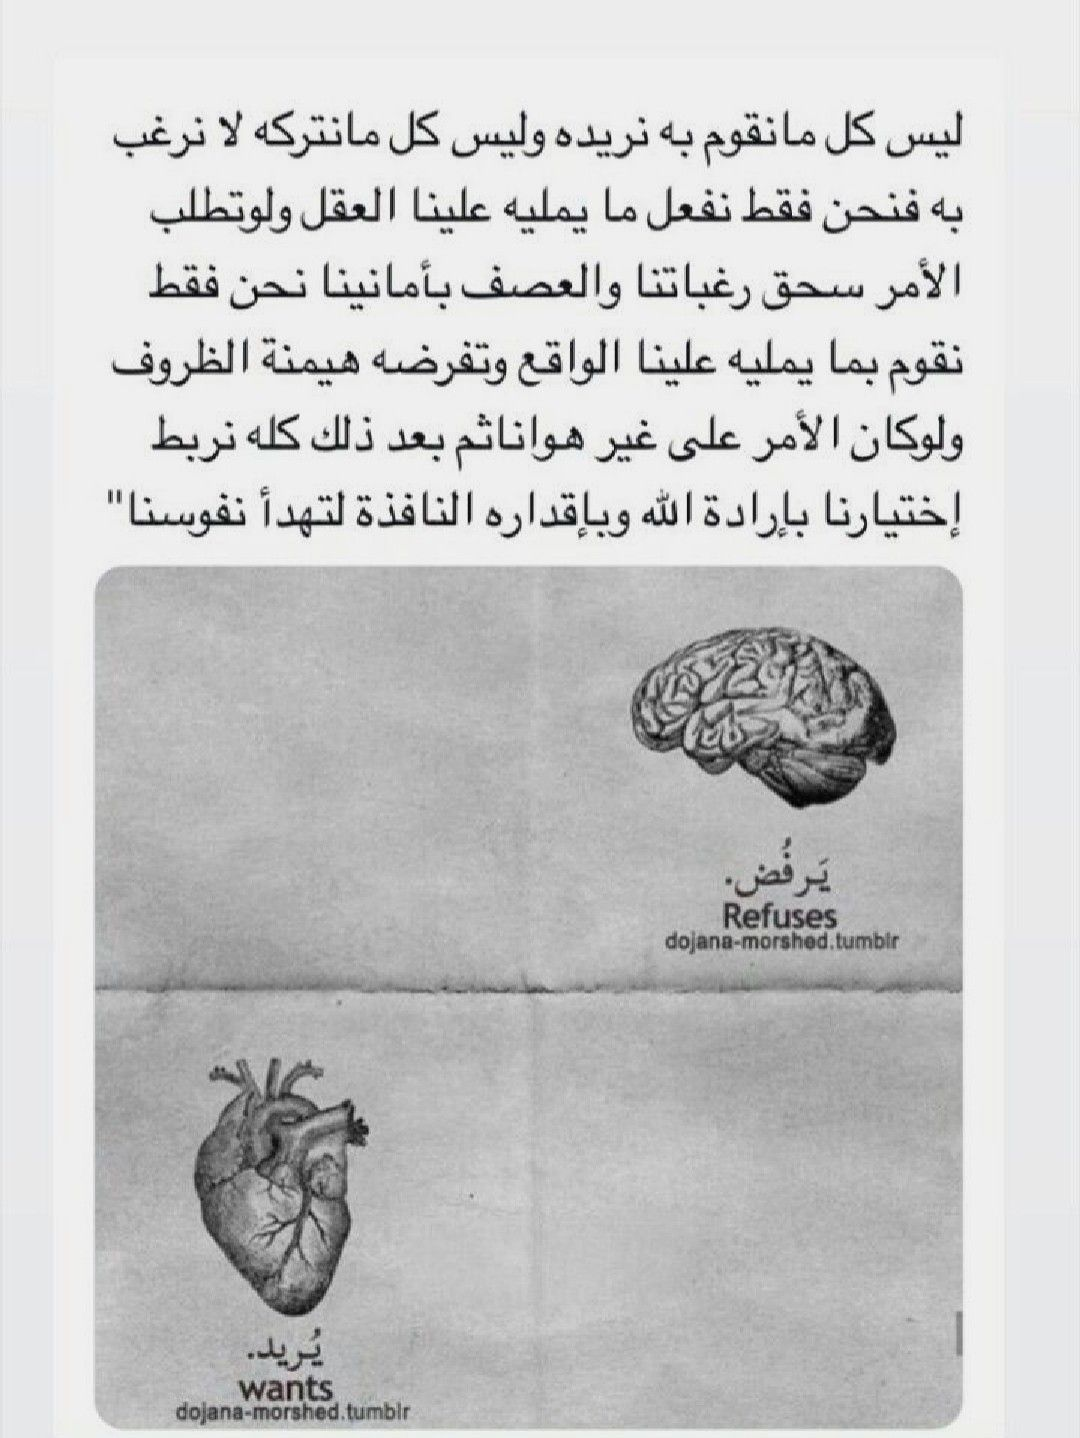 Pin By Asia Abdallah On Quotes Arabic Quotes Wise Words Quotes Beautiful Arabic Words